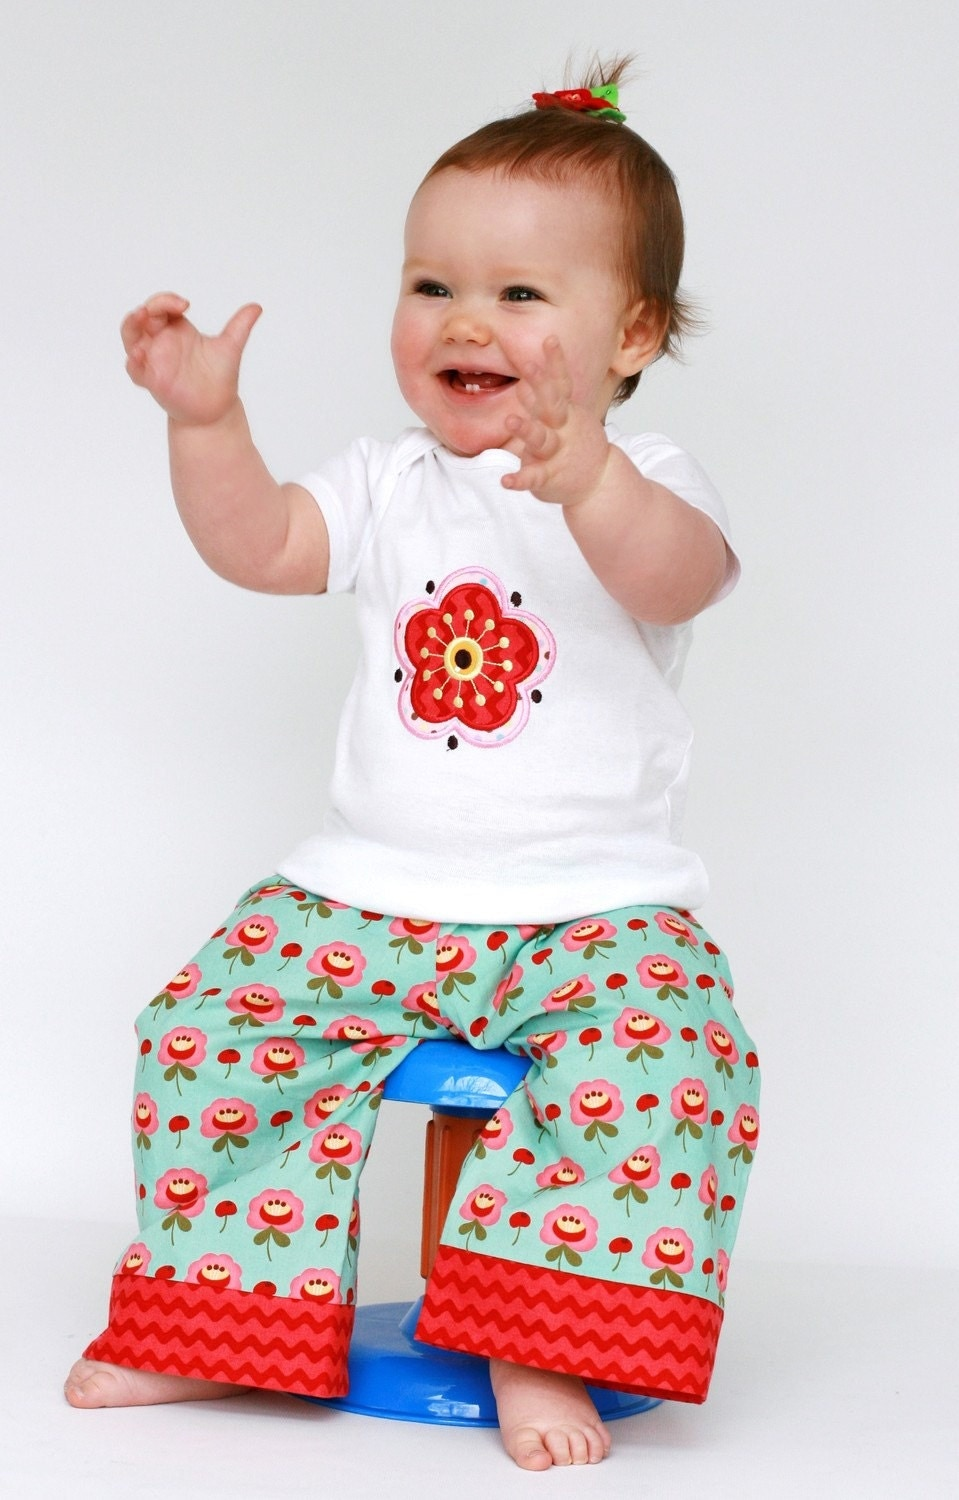 Flower Power Big Butt Baby Cloth Diaper Pants and Onesie - 6 months